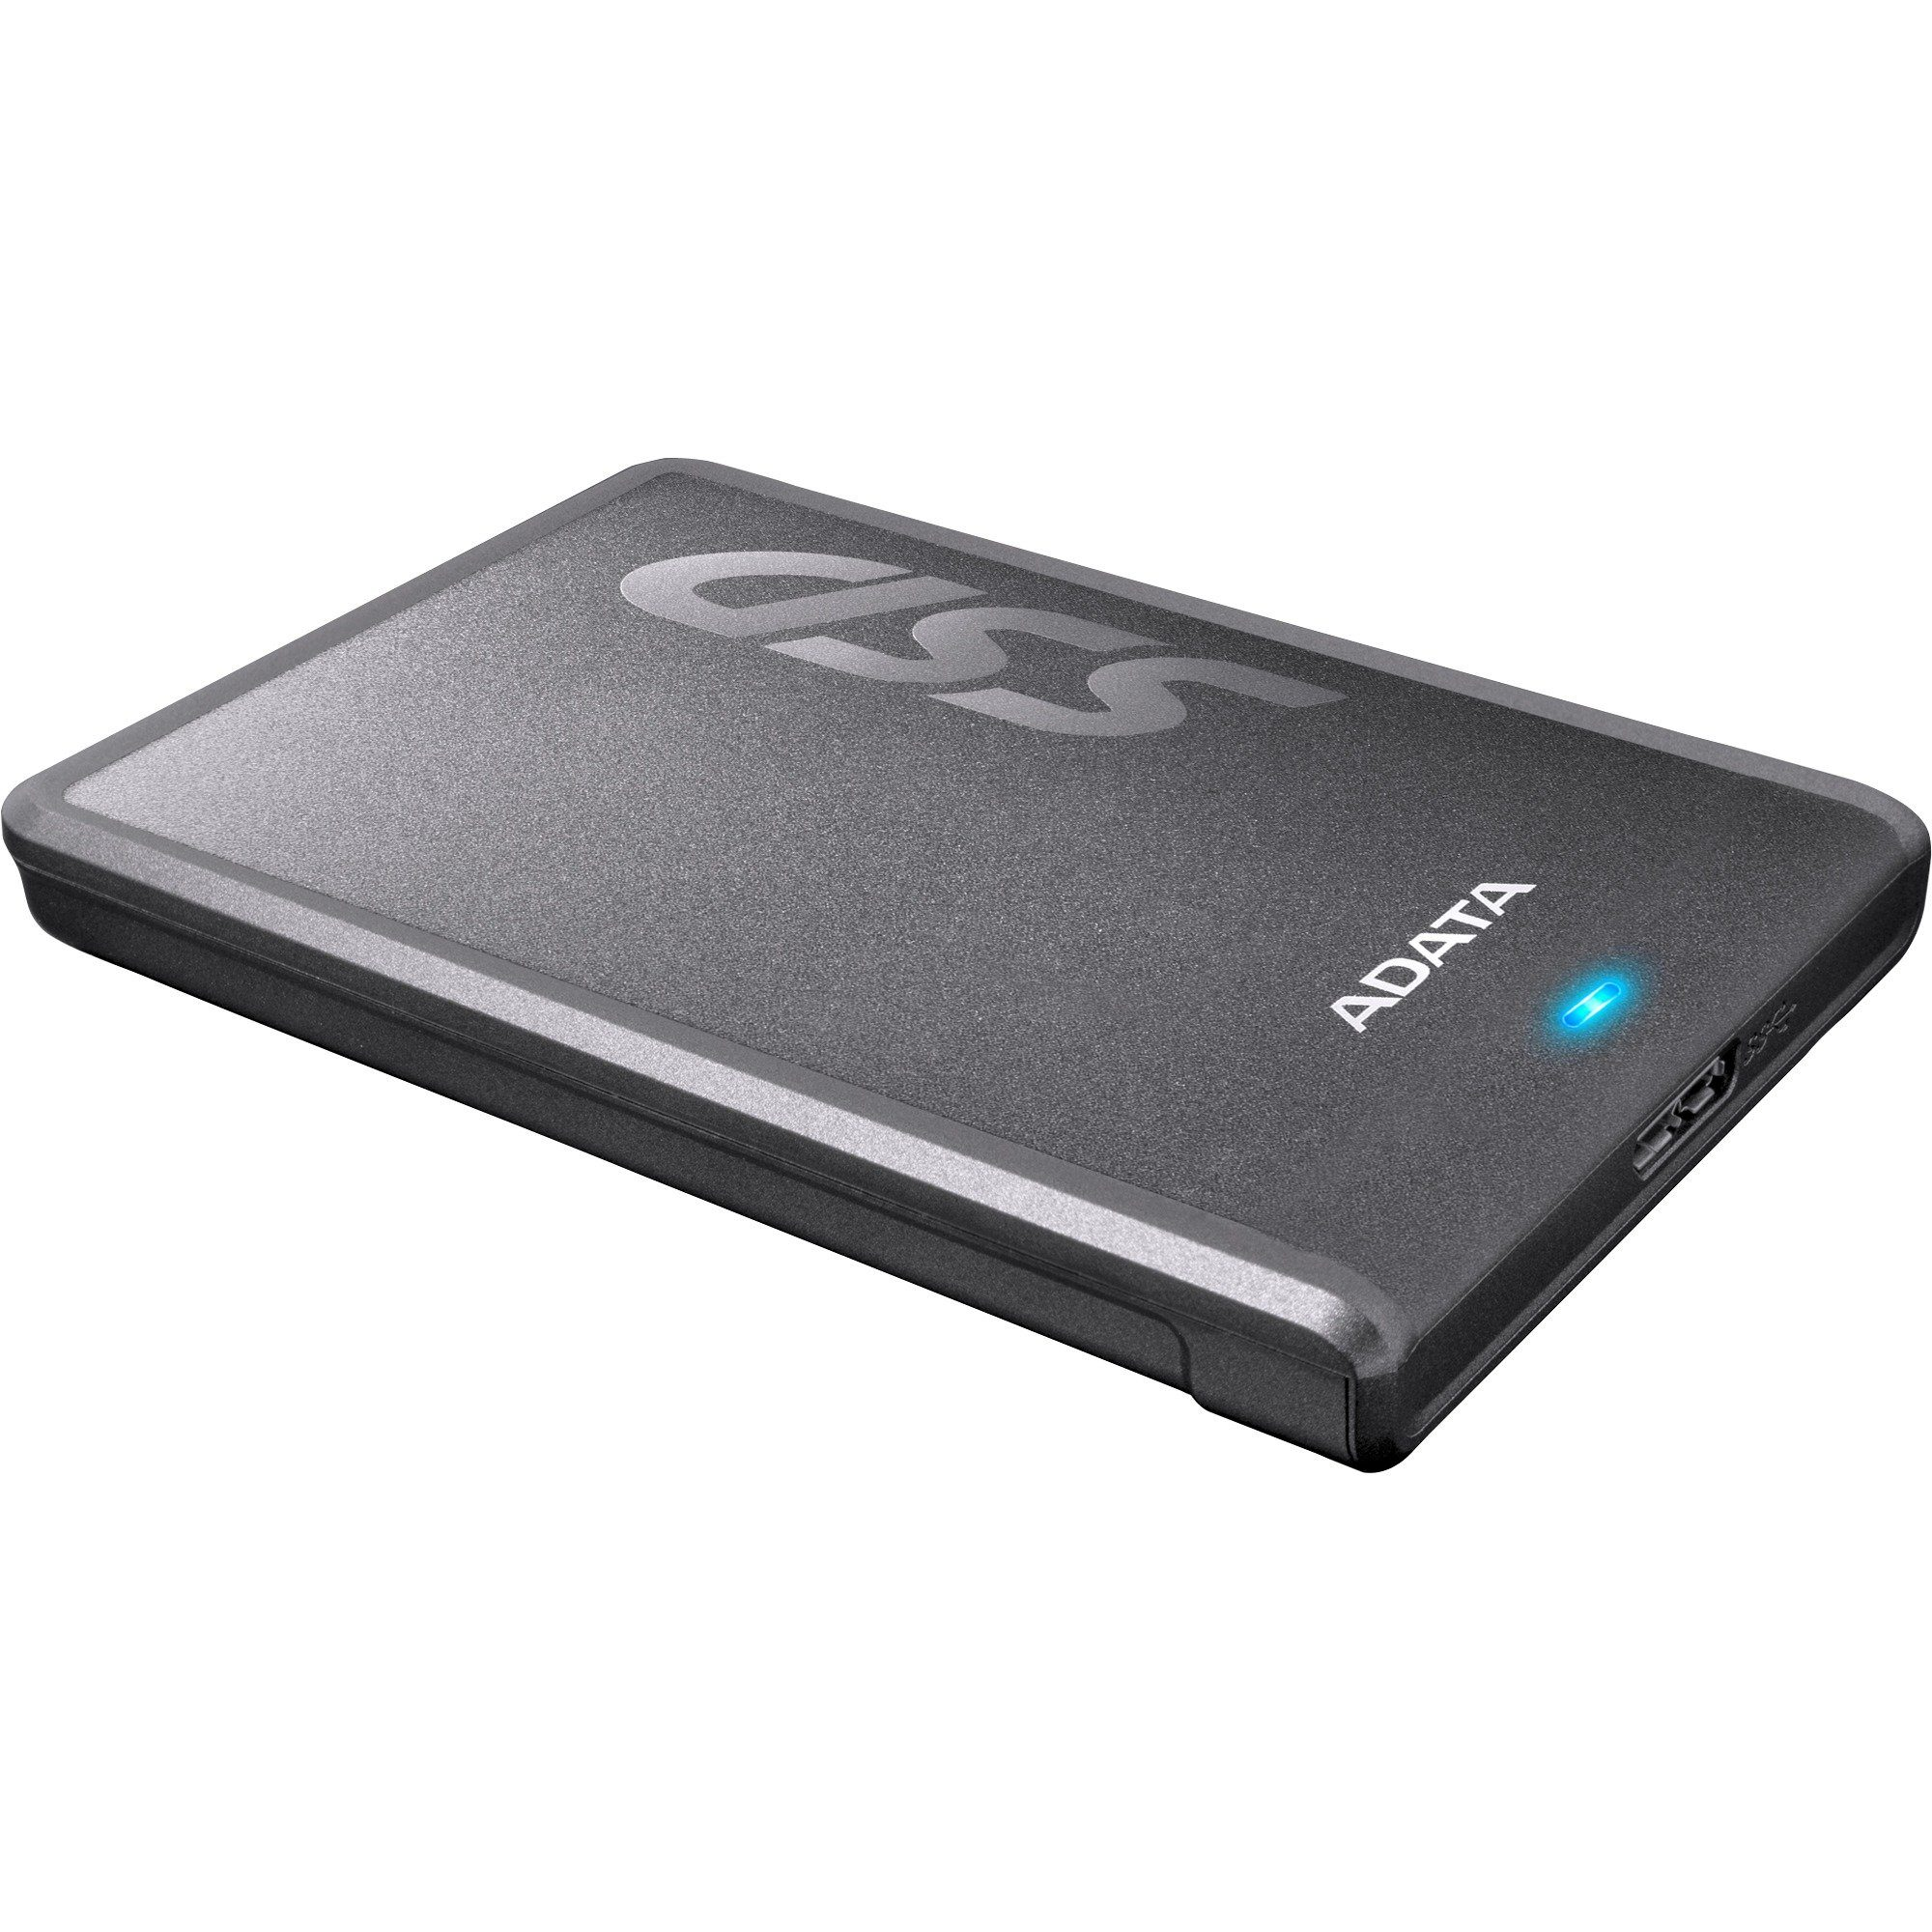 ADATA Solid State Drive »SV620 240 GB«